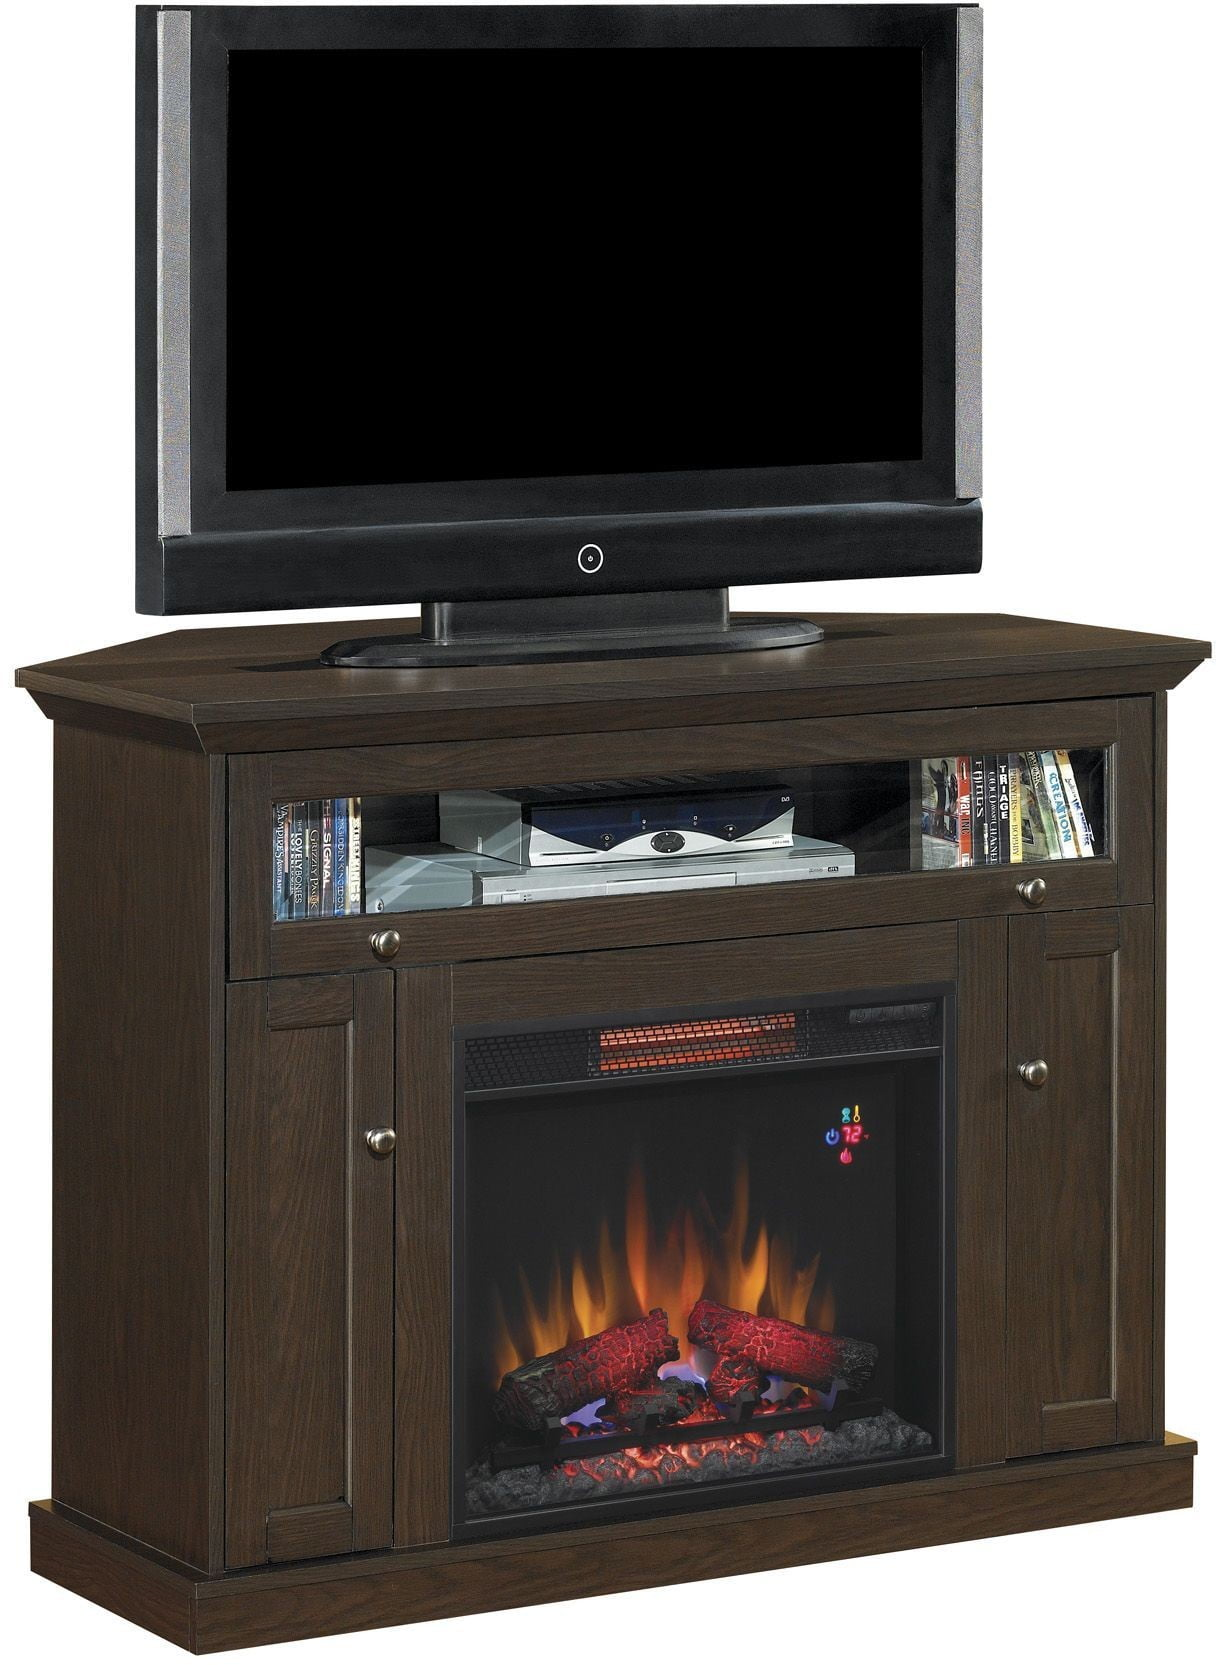 Classicflame Oak Espresso Windsor Tv Stand With 26 Infrared Quartz Fireplace From Twin Star